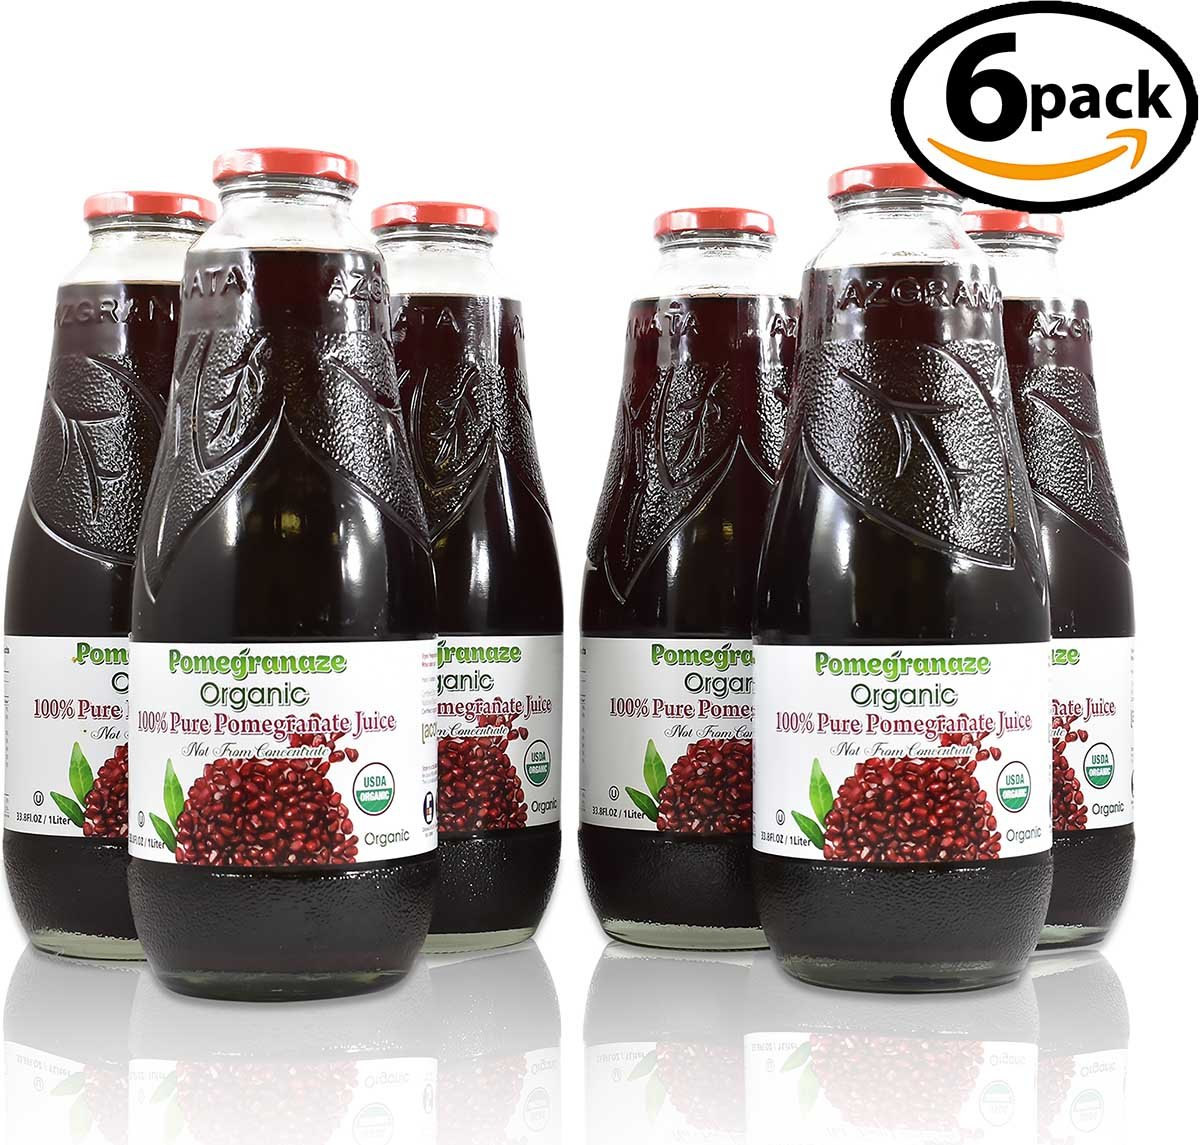 100% Pomegranate Juice - 6 Pack,33.8Fl Oz - USDA Organic Certified - Glass Bottle - No Sugar Added - No Preservatives - Squeezed From Fresh Pomegranates